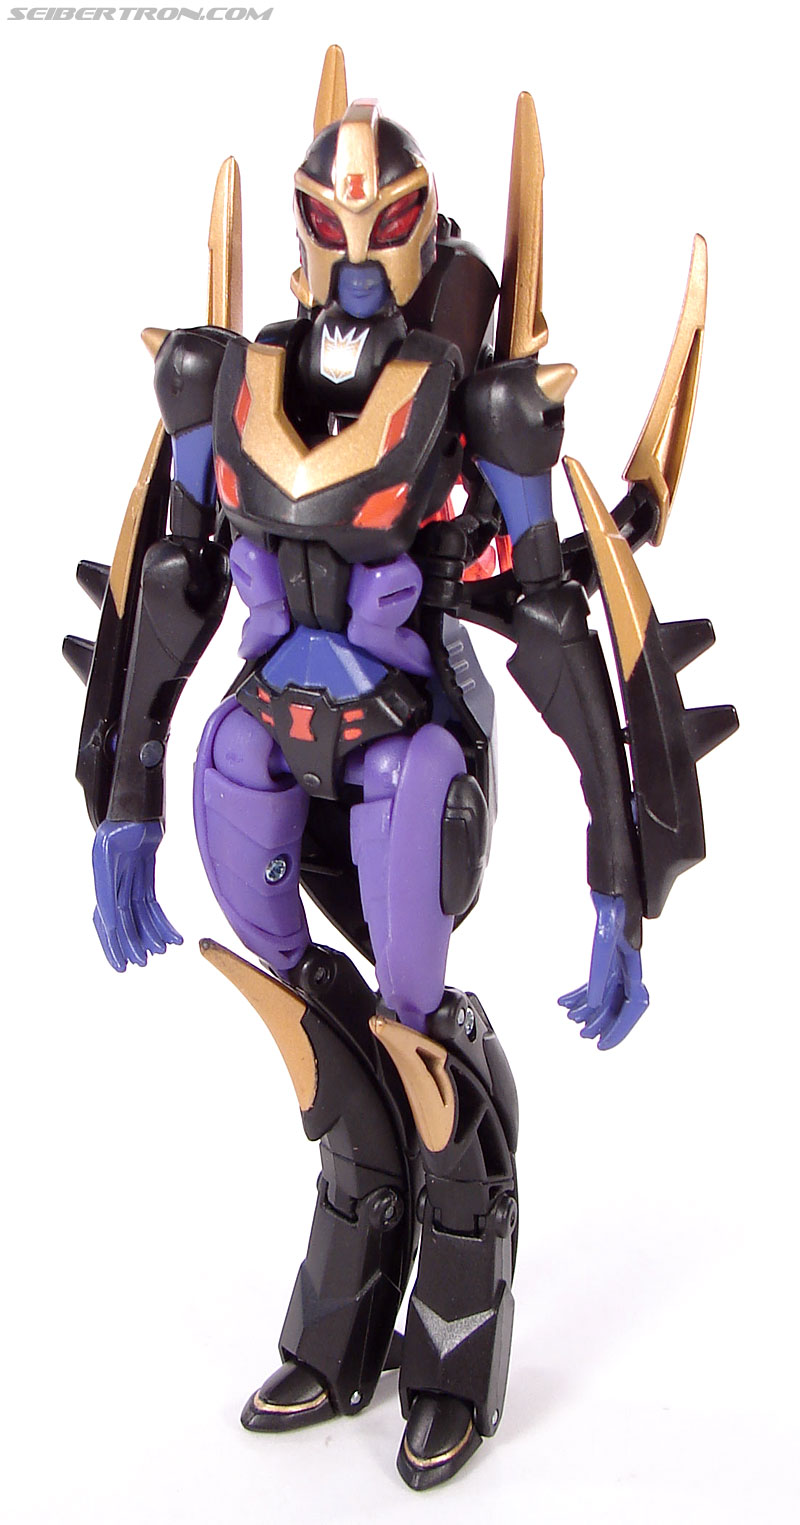 Transformers Animated Blackarachnia (Image #113 of 126)